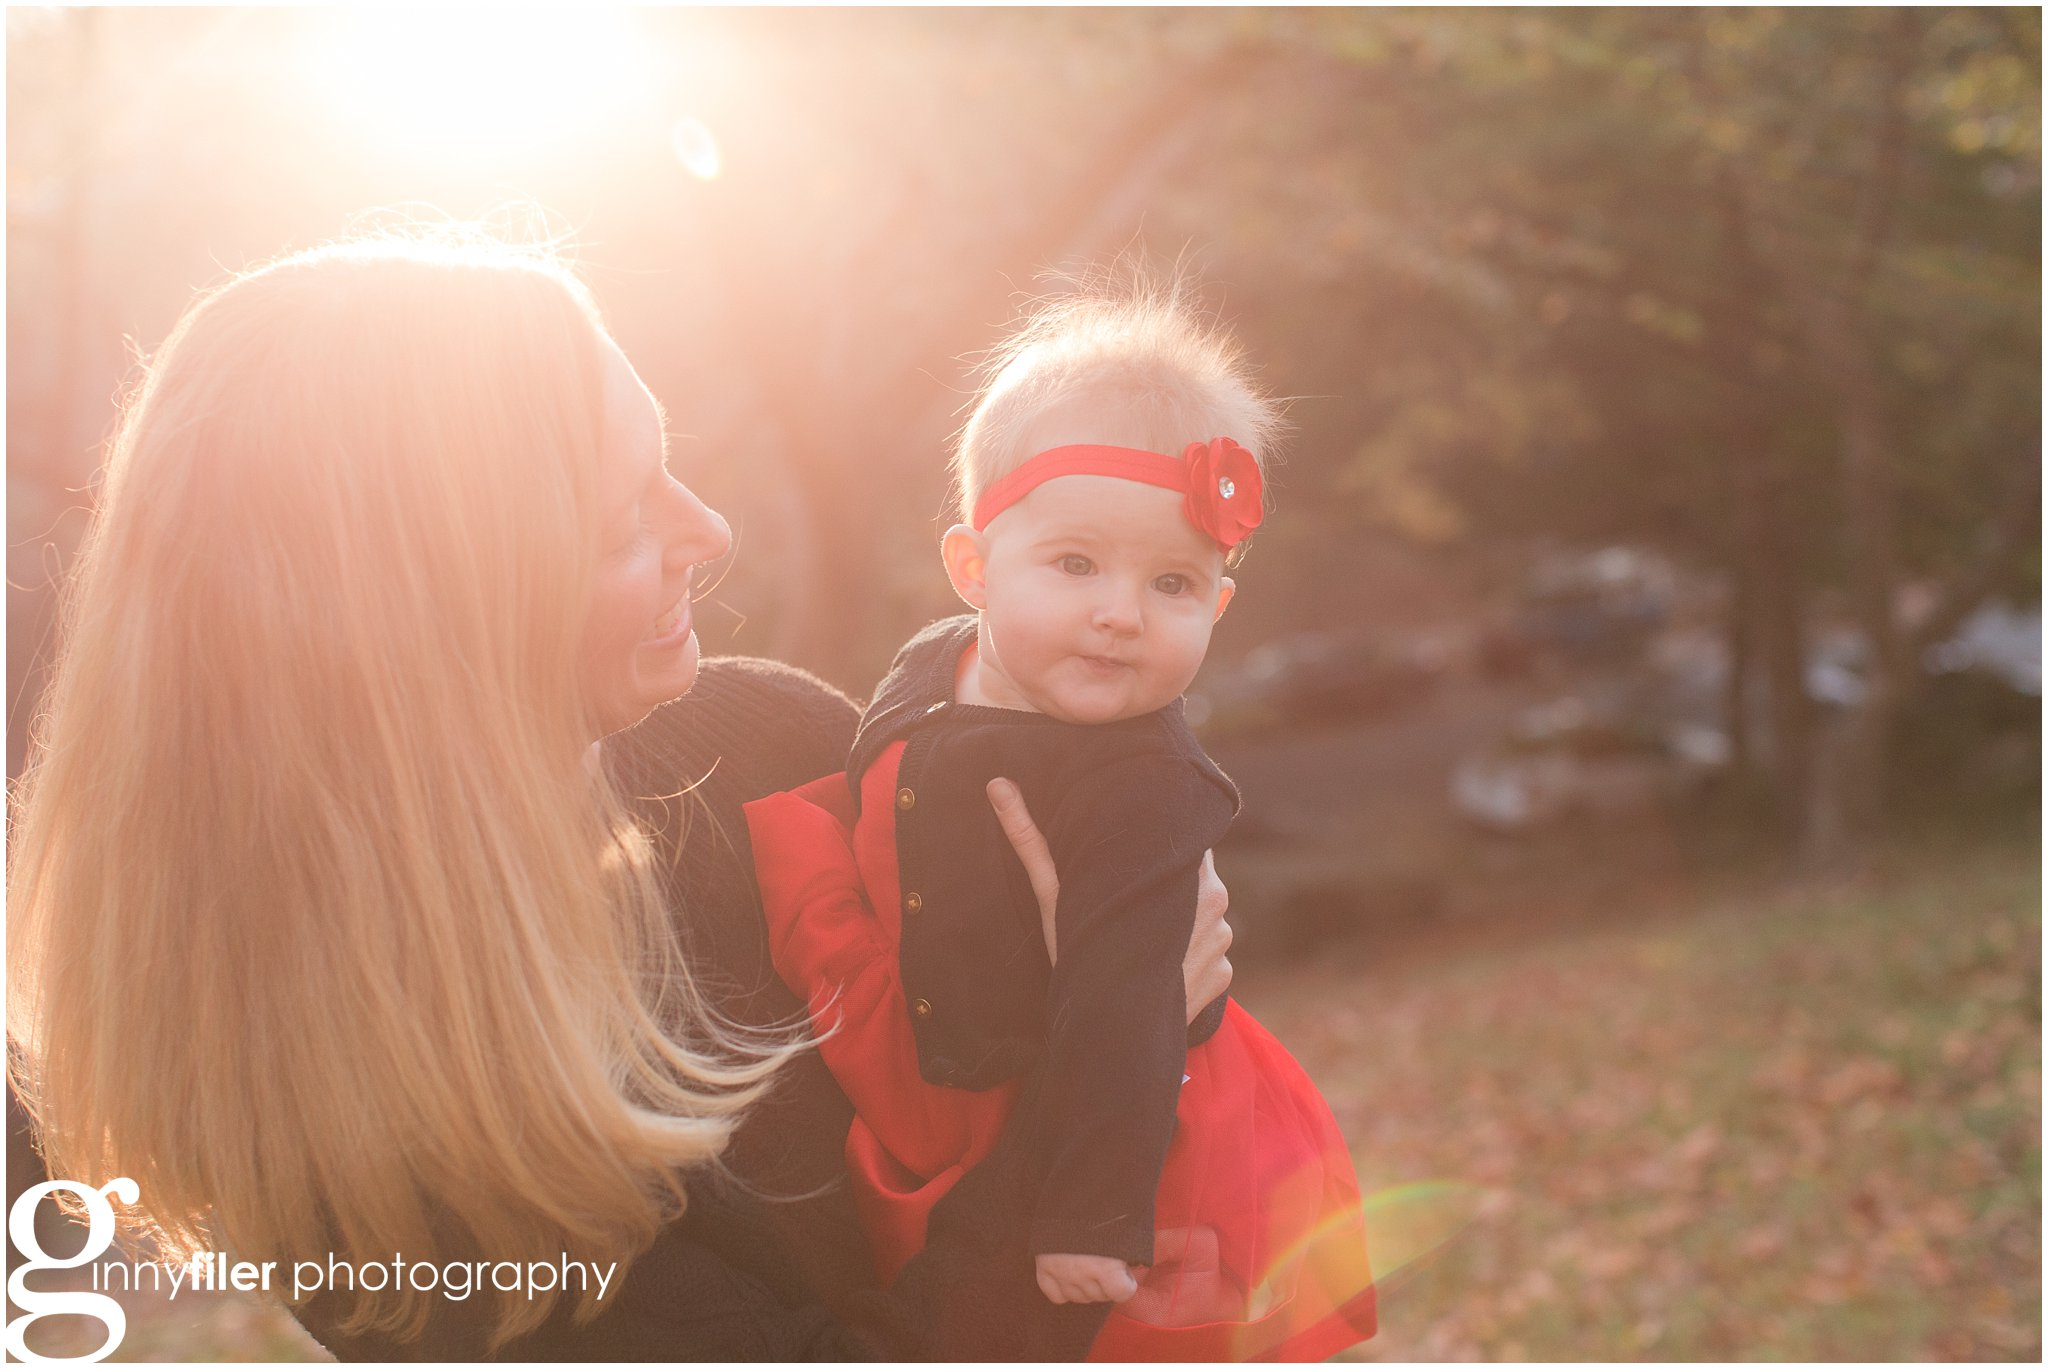 family_photography_Heard_0010.jpg